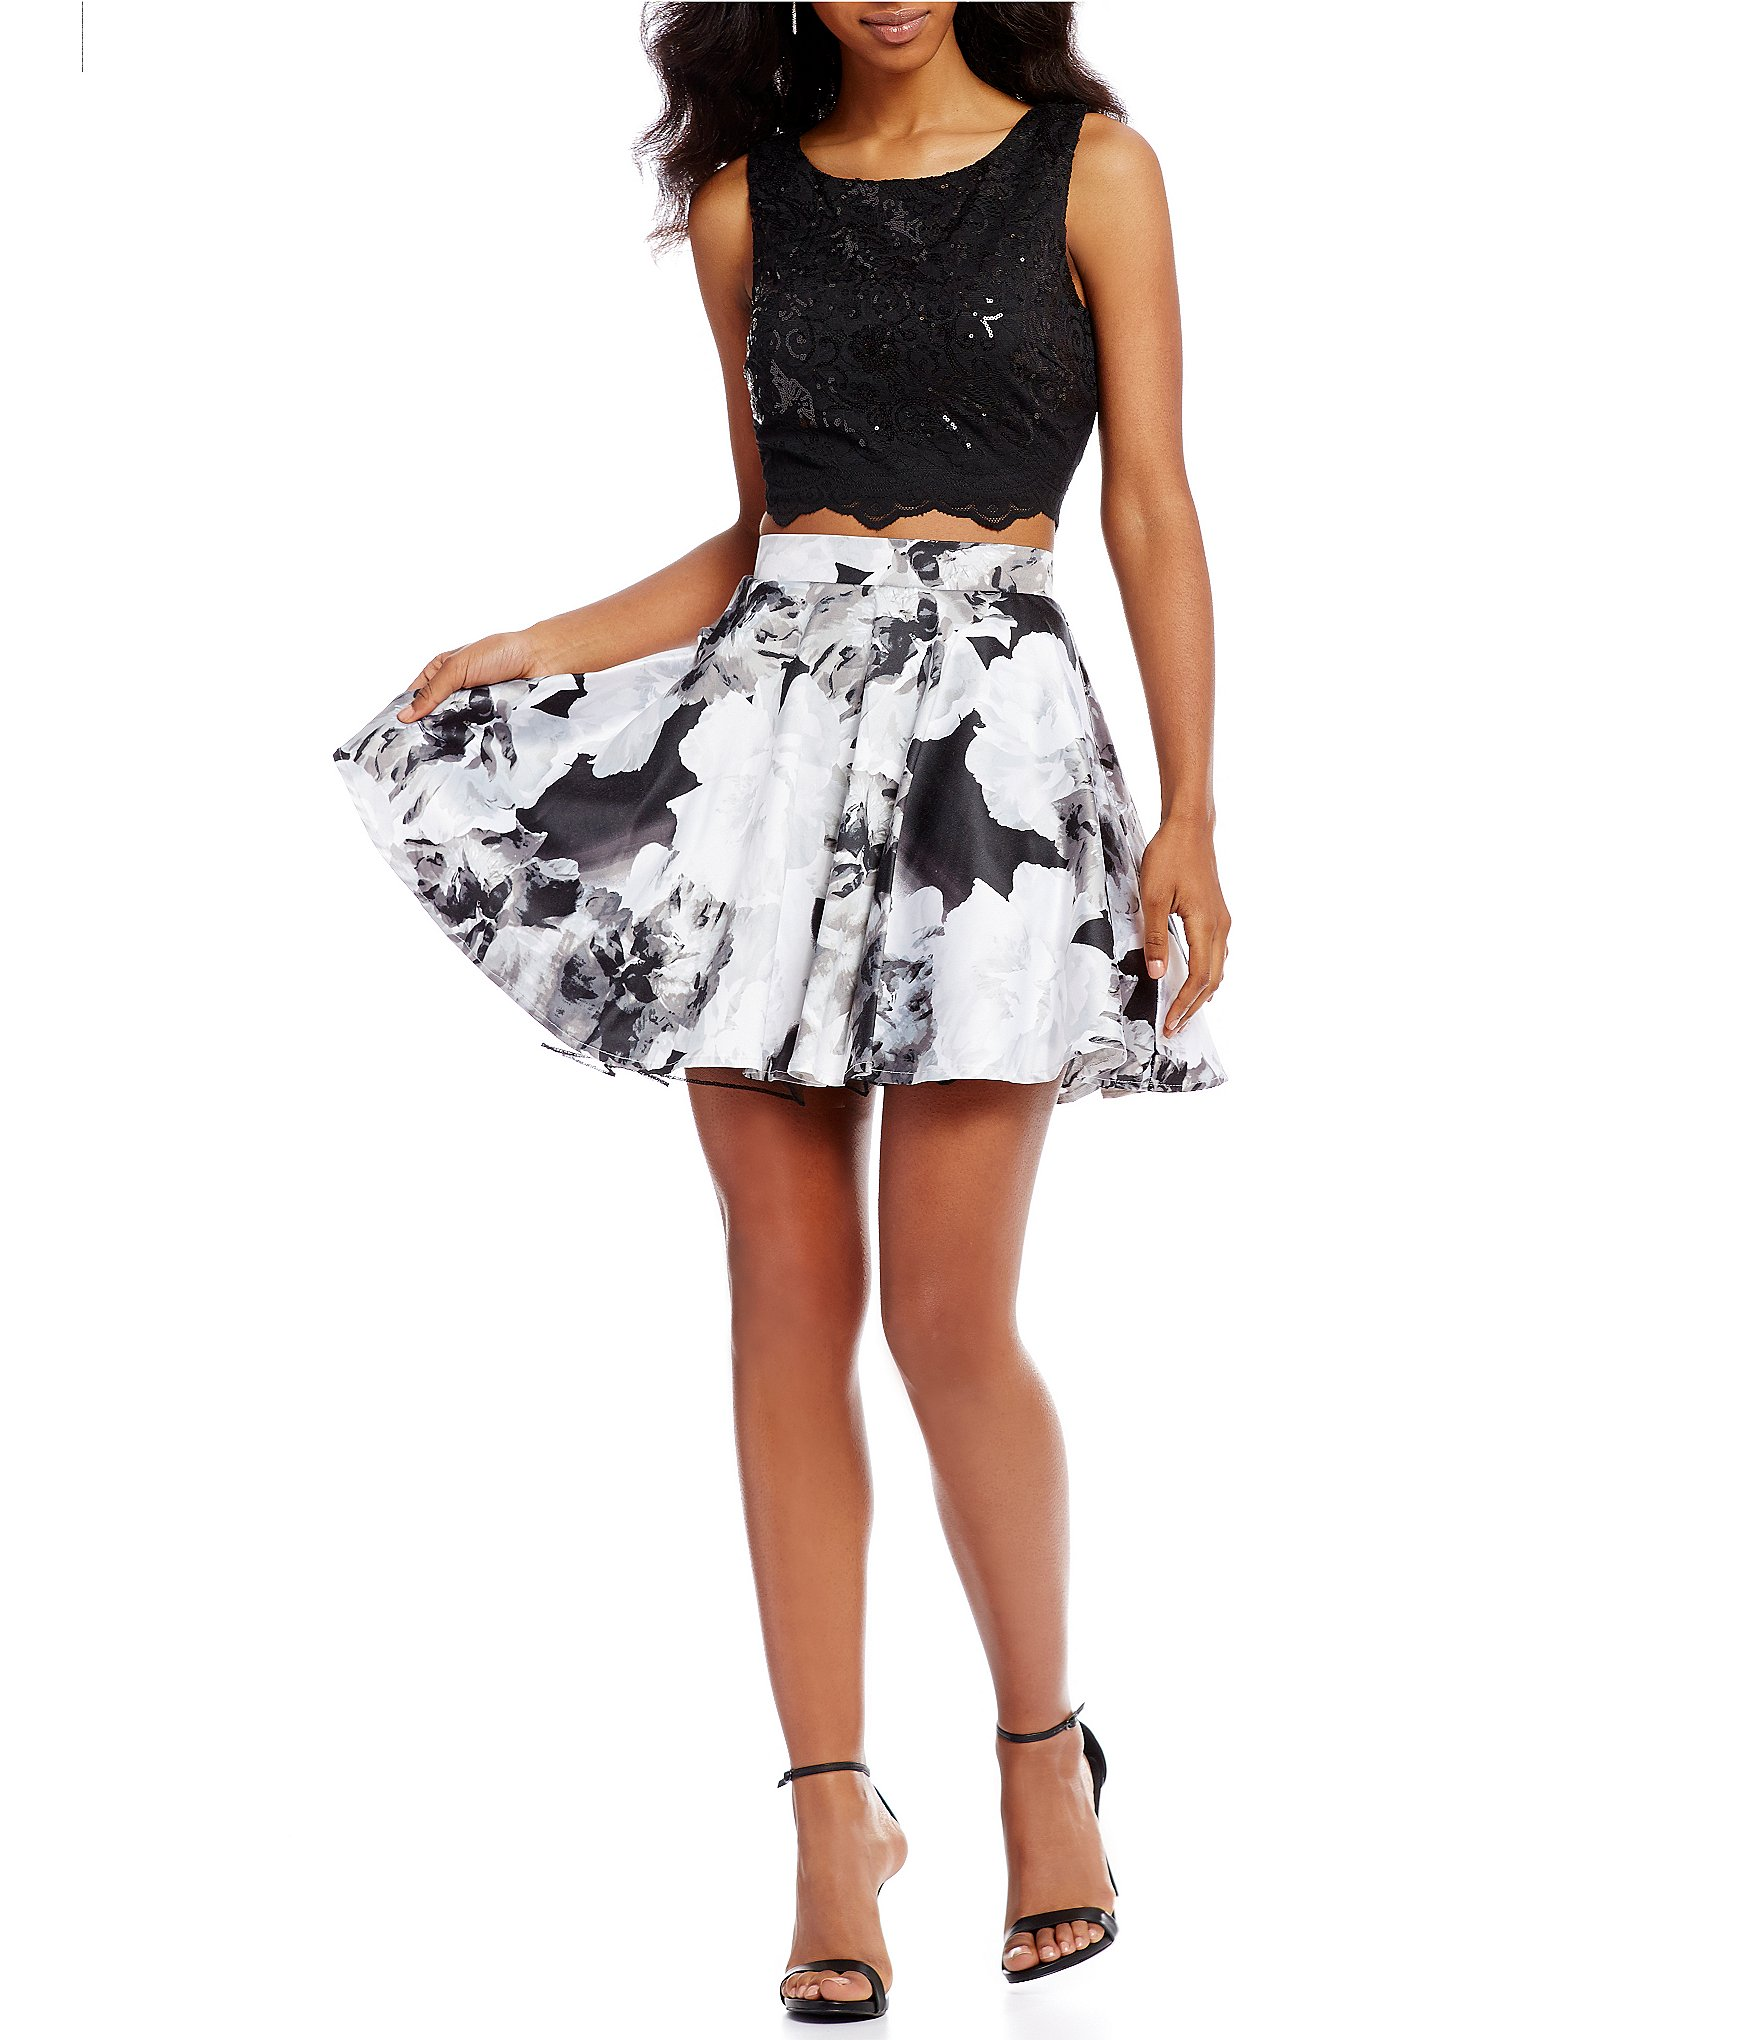 jodi kristopher sequin lace top with floral print skirt